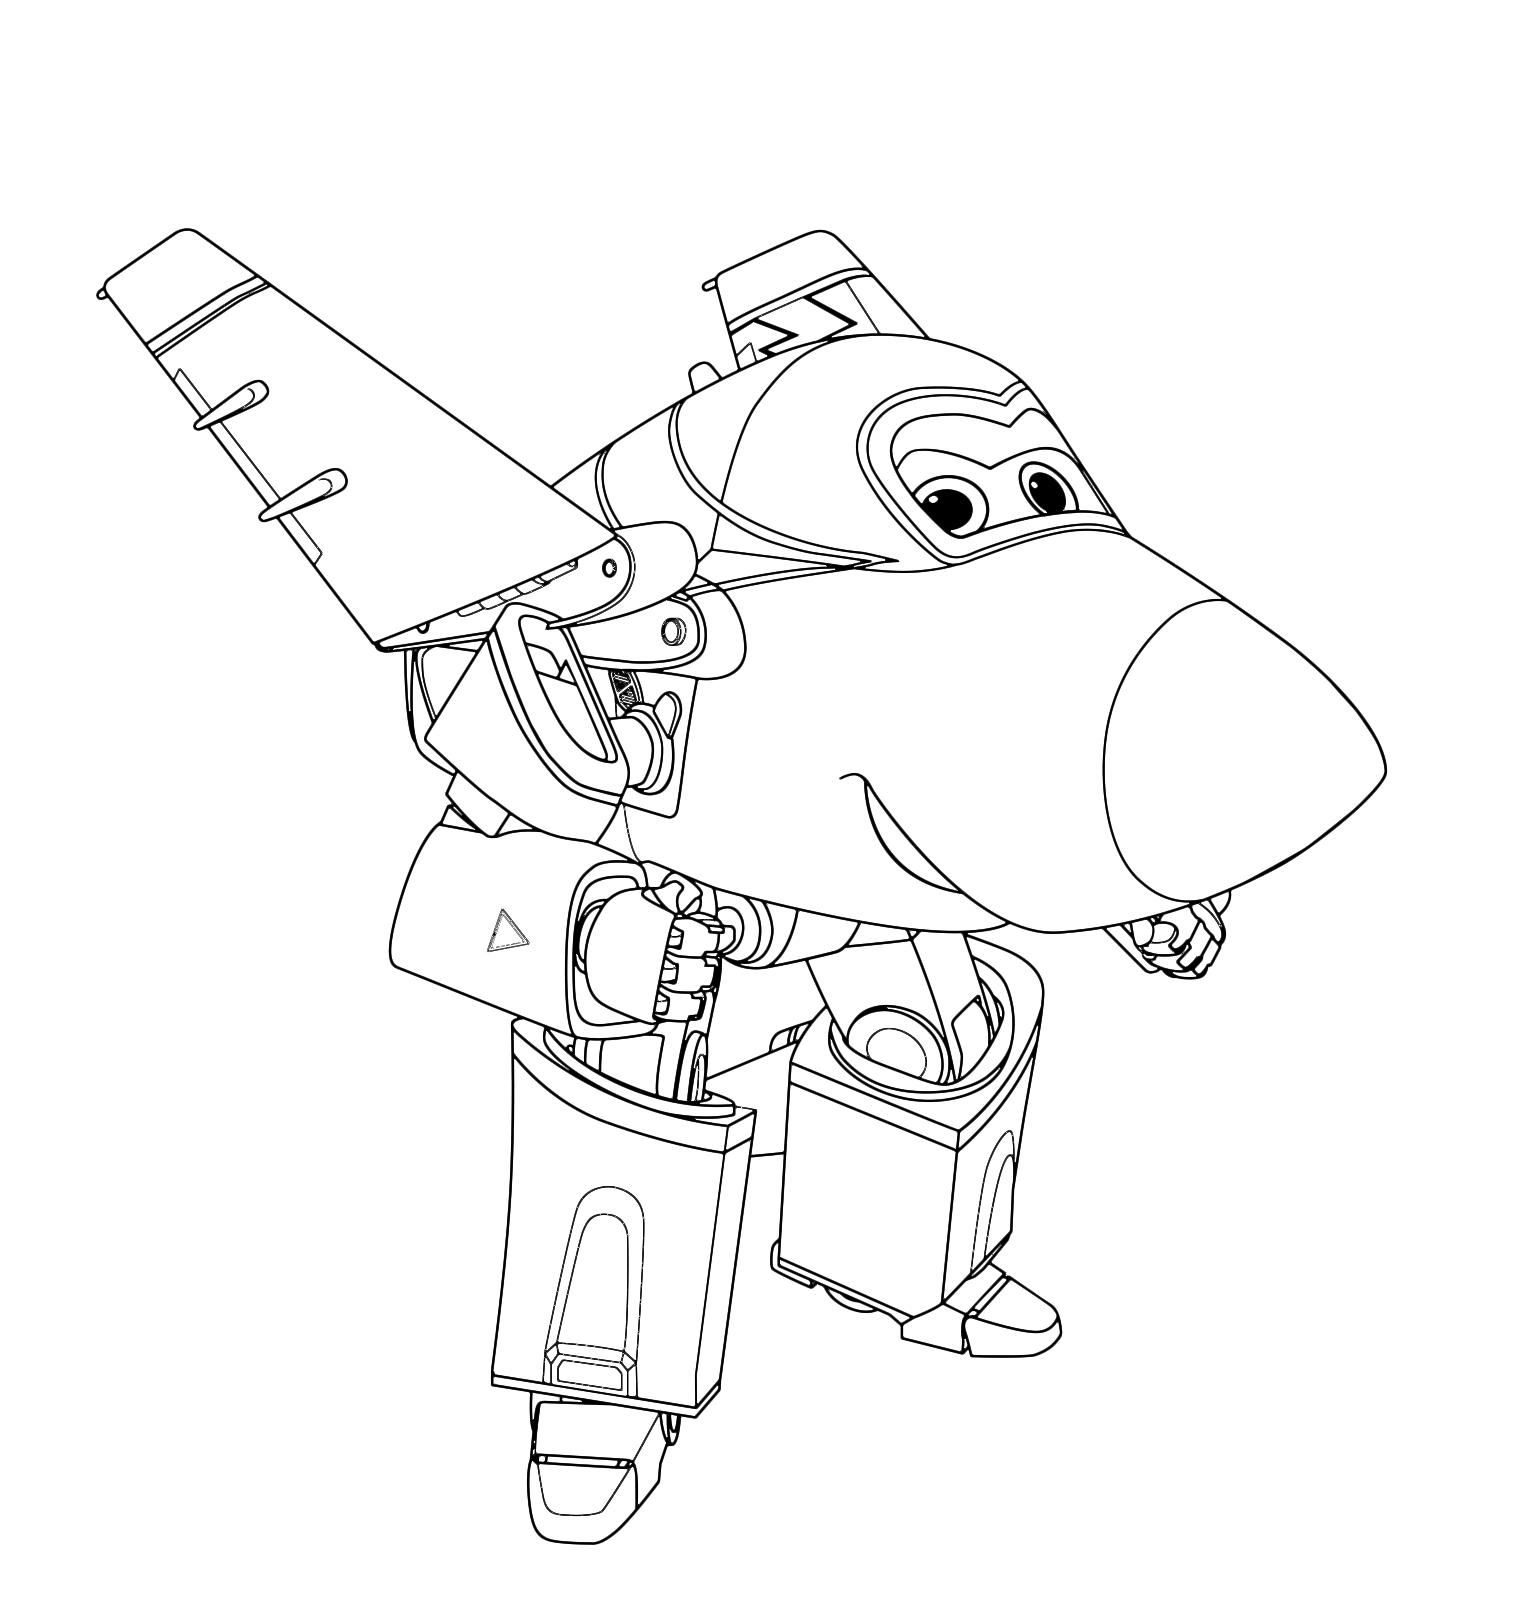 Super wings jerome pronto per una acrobazia for Disegni da colorare super wings